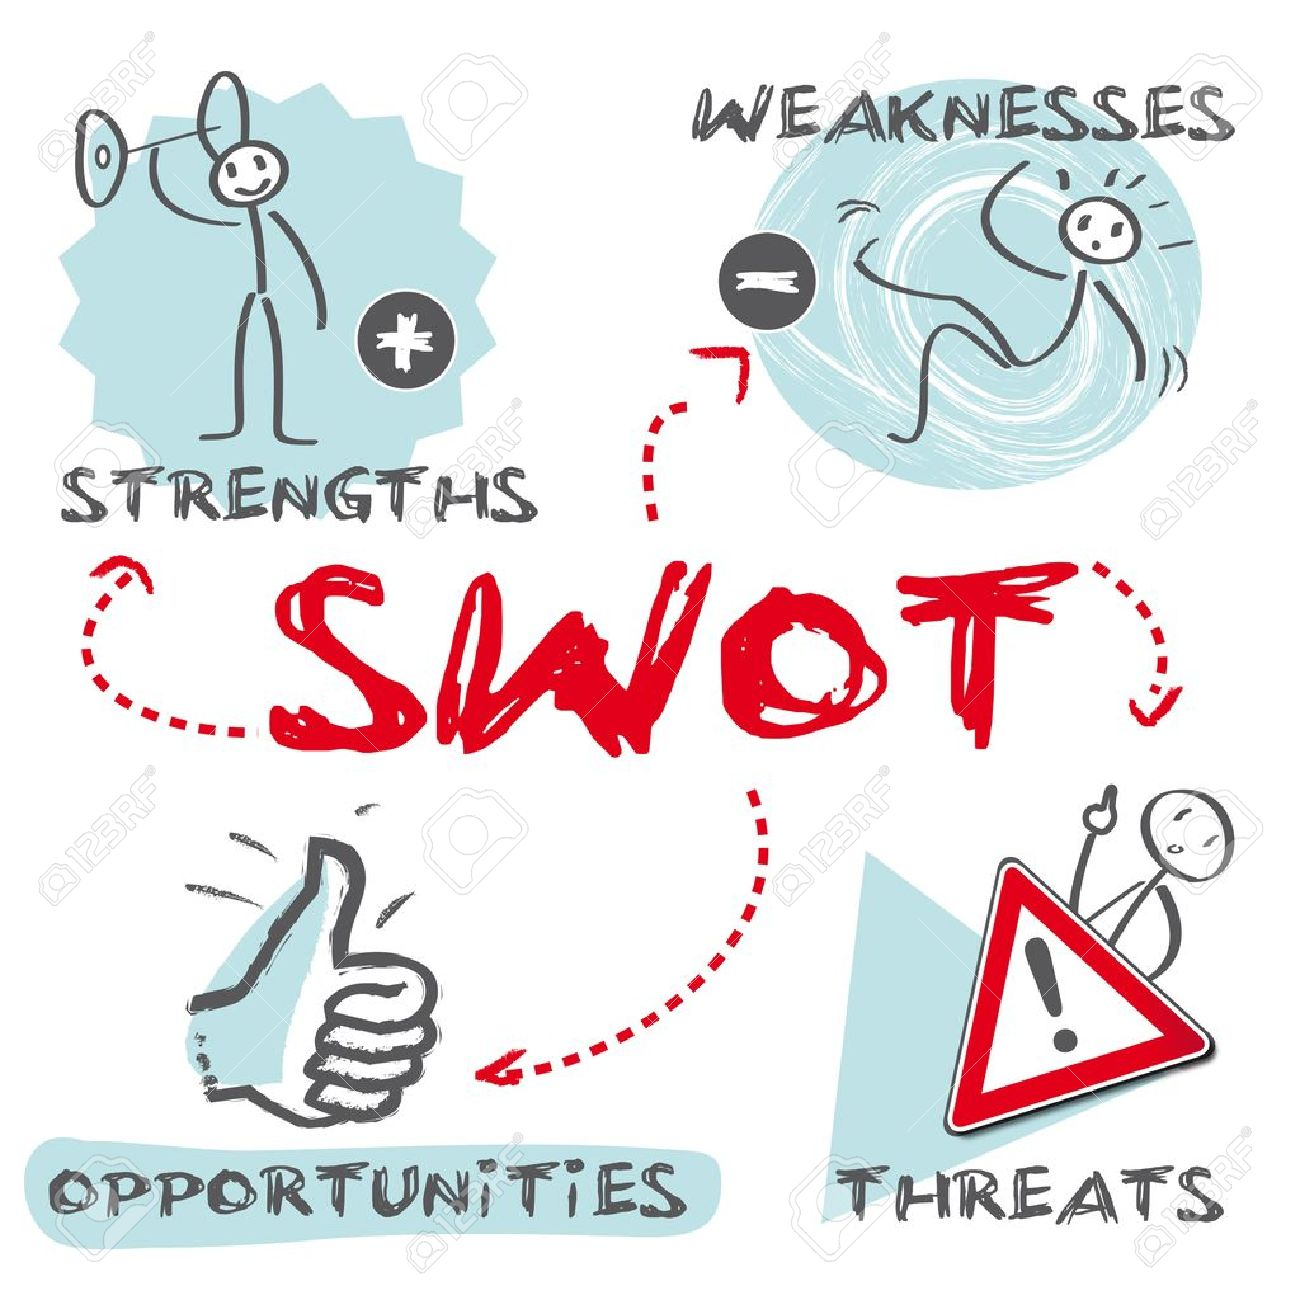 swot strengths weaknesses opportunities threats royalty swot strengths weaknesses opportunities threats stock vector 19220799